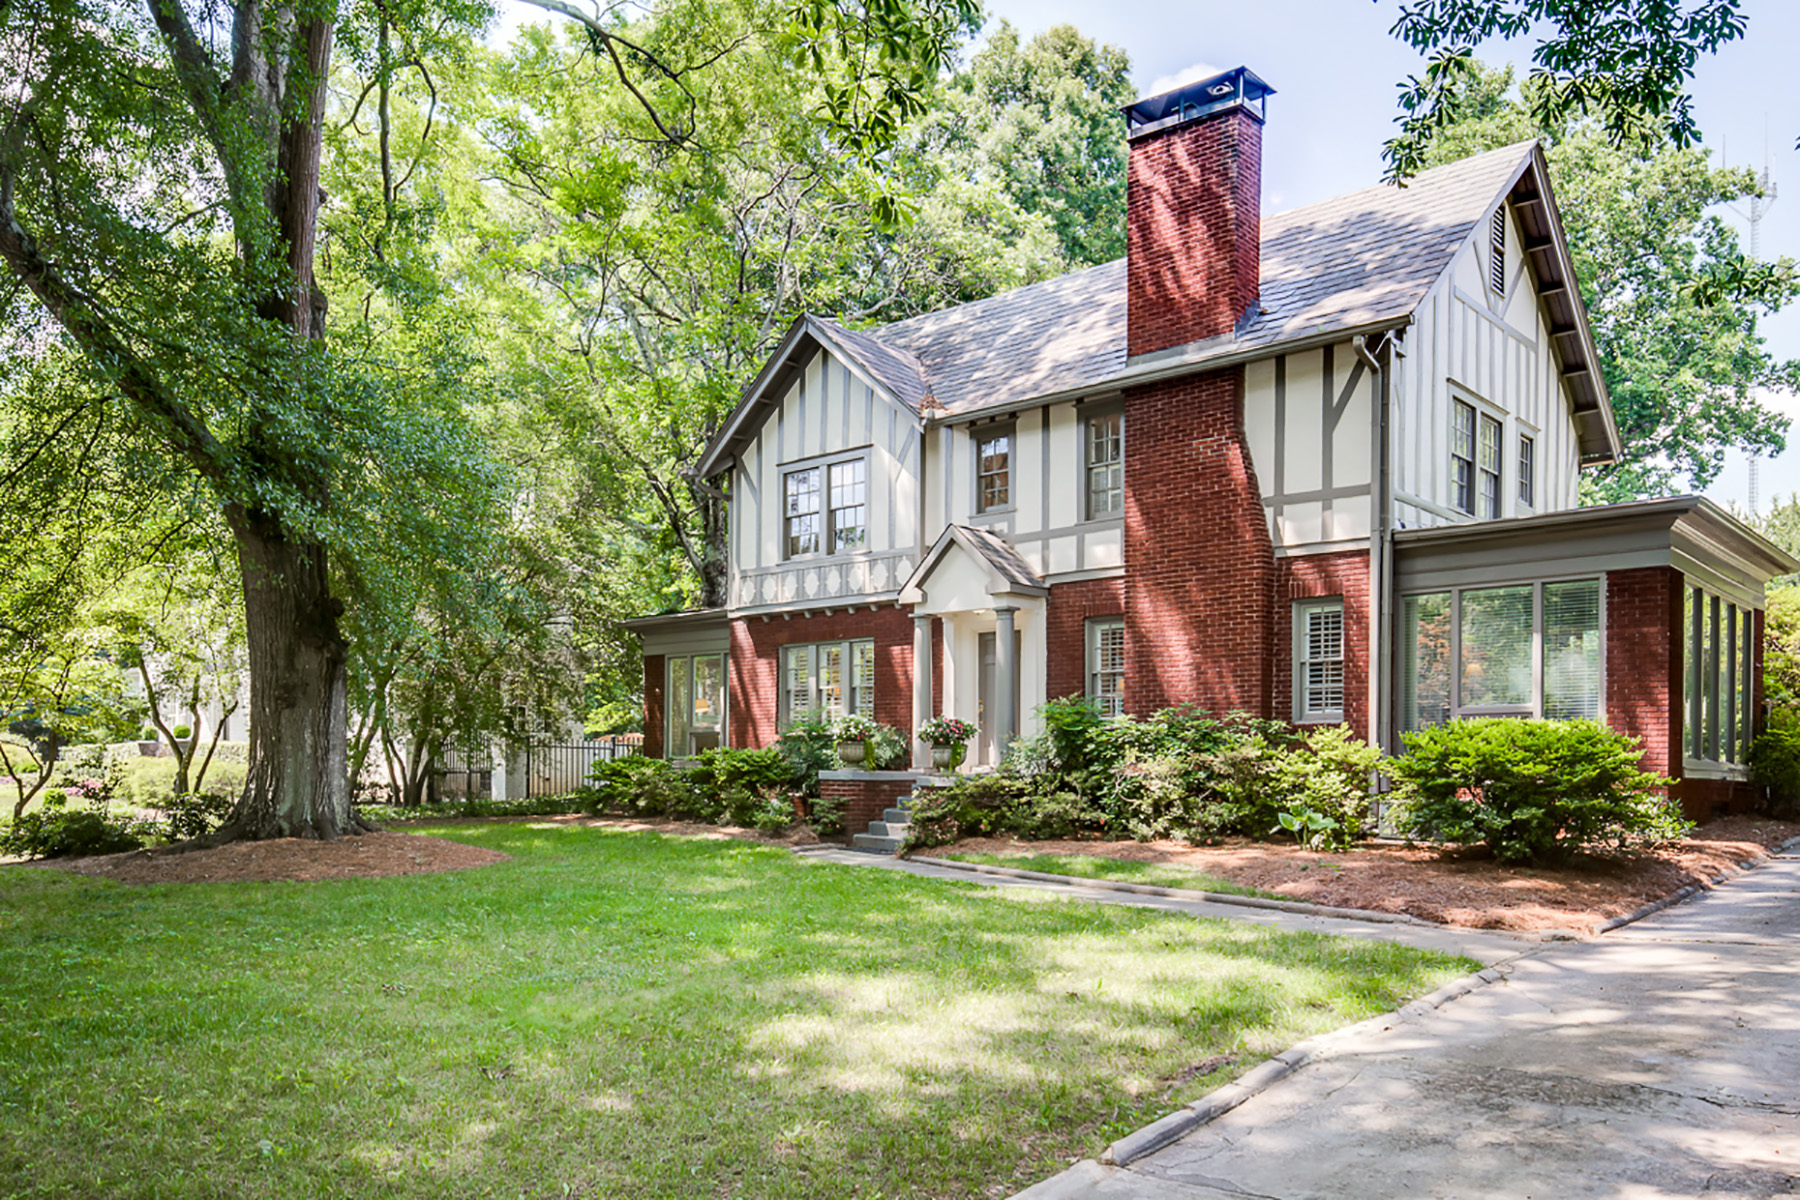 Additional photo for property listing at This Winsome 1929 Tudor Will Captivate You With Its Architectural Charm 1338 N Decatur Road NE Atlanta, Georgia 30306 Hoa Kỳ